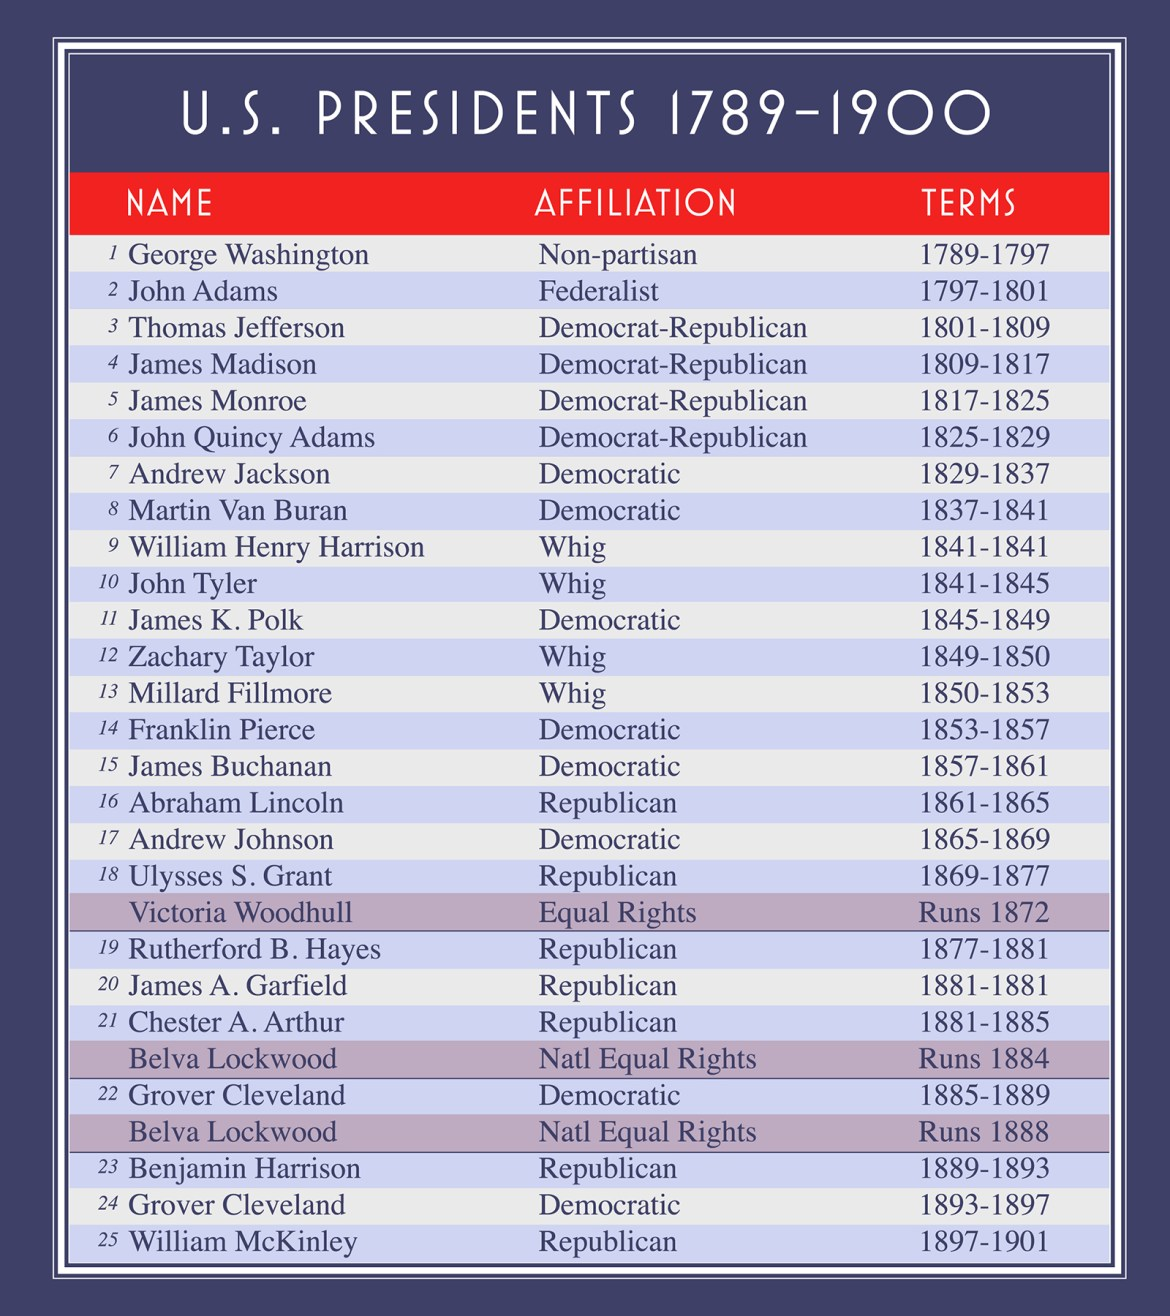 US Presidents 1789-1900